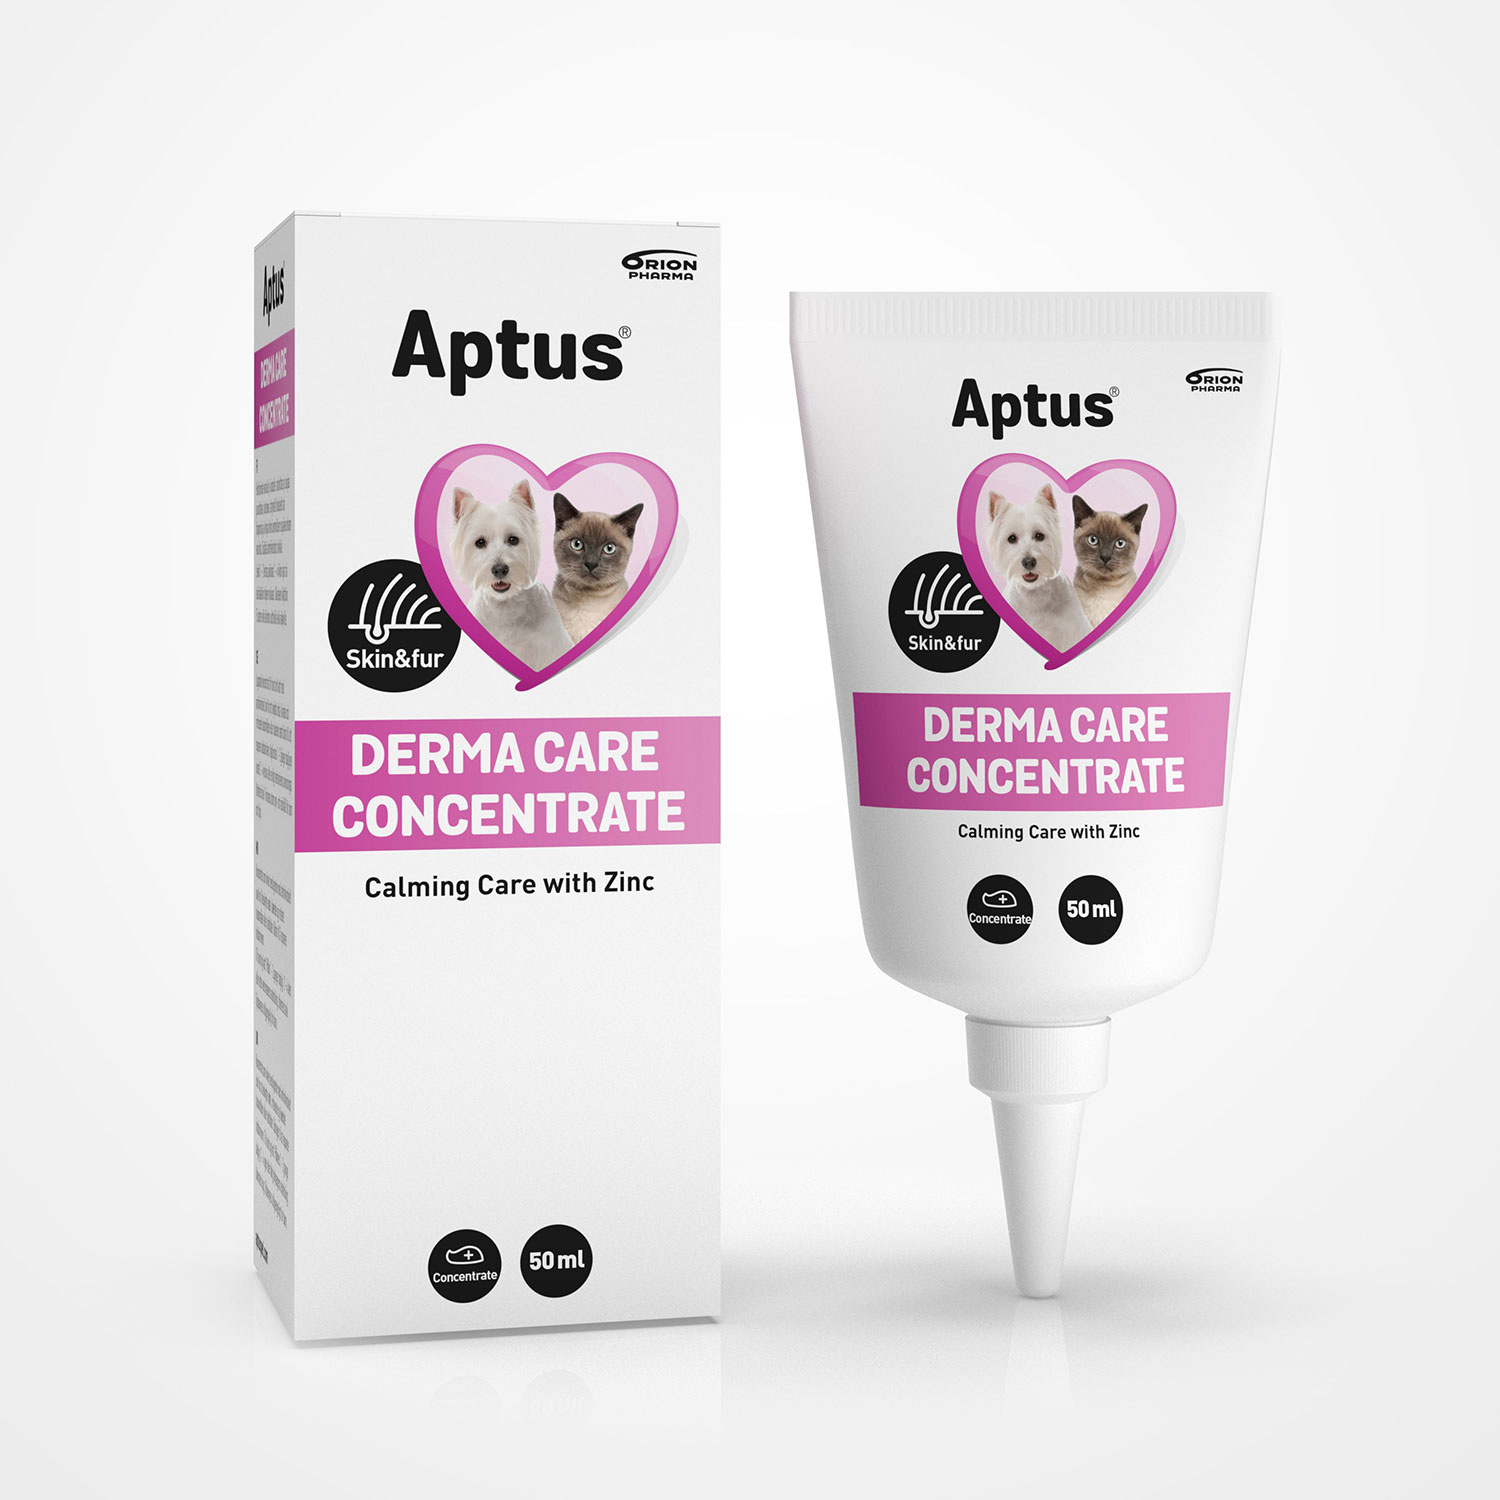 Aptus Derma Care Concentrate